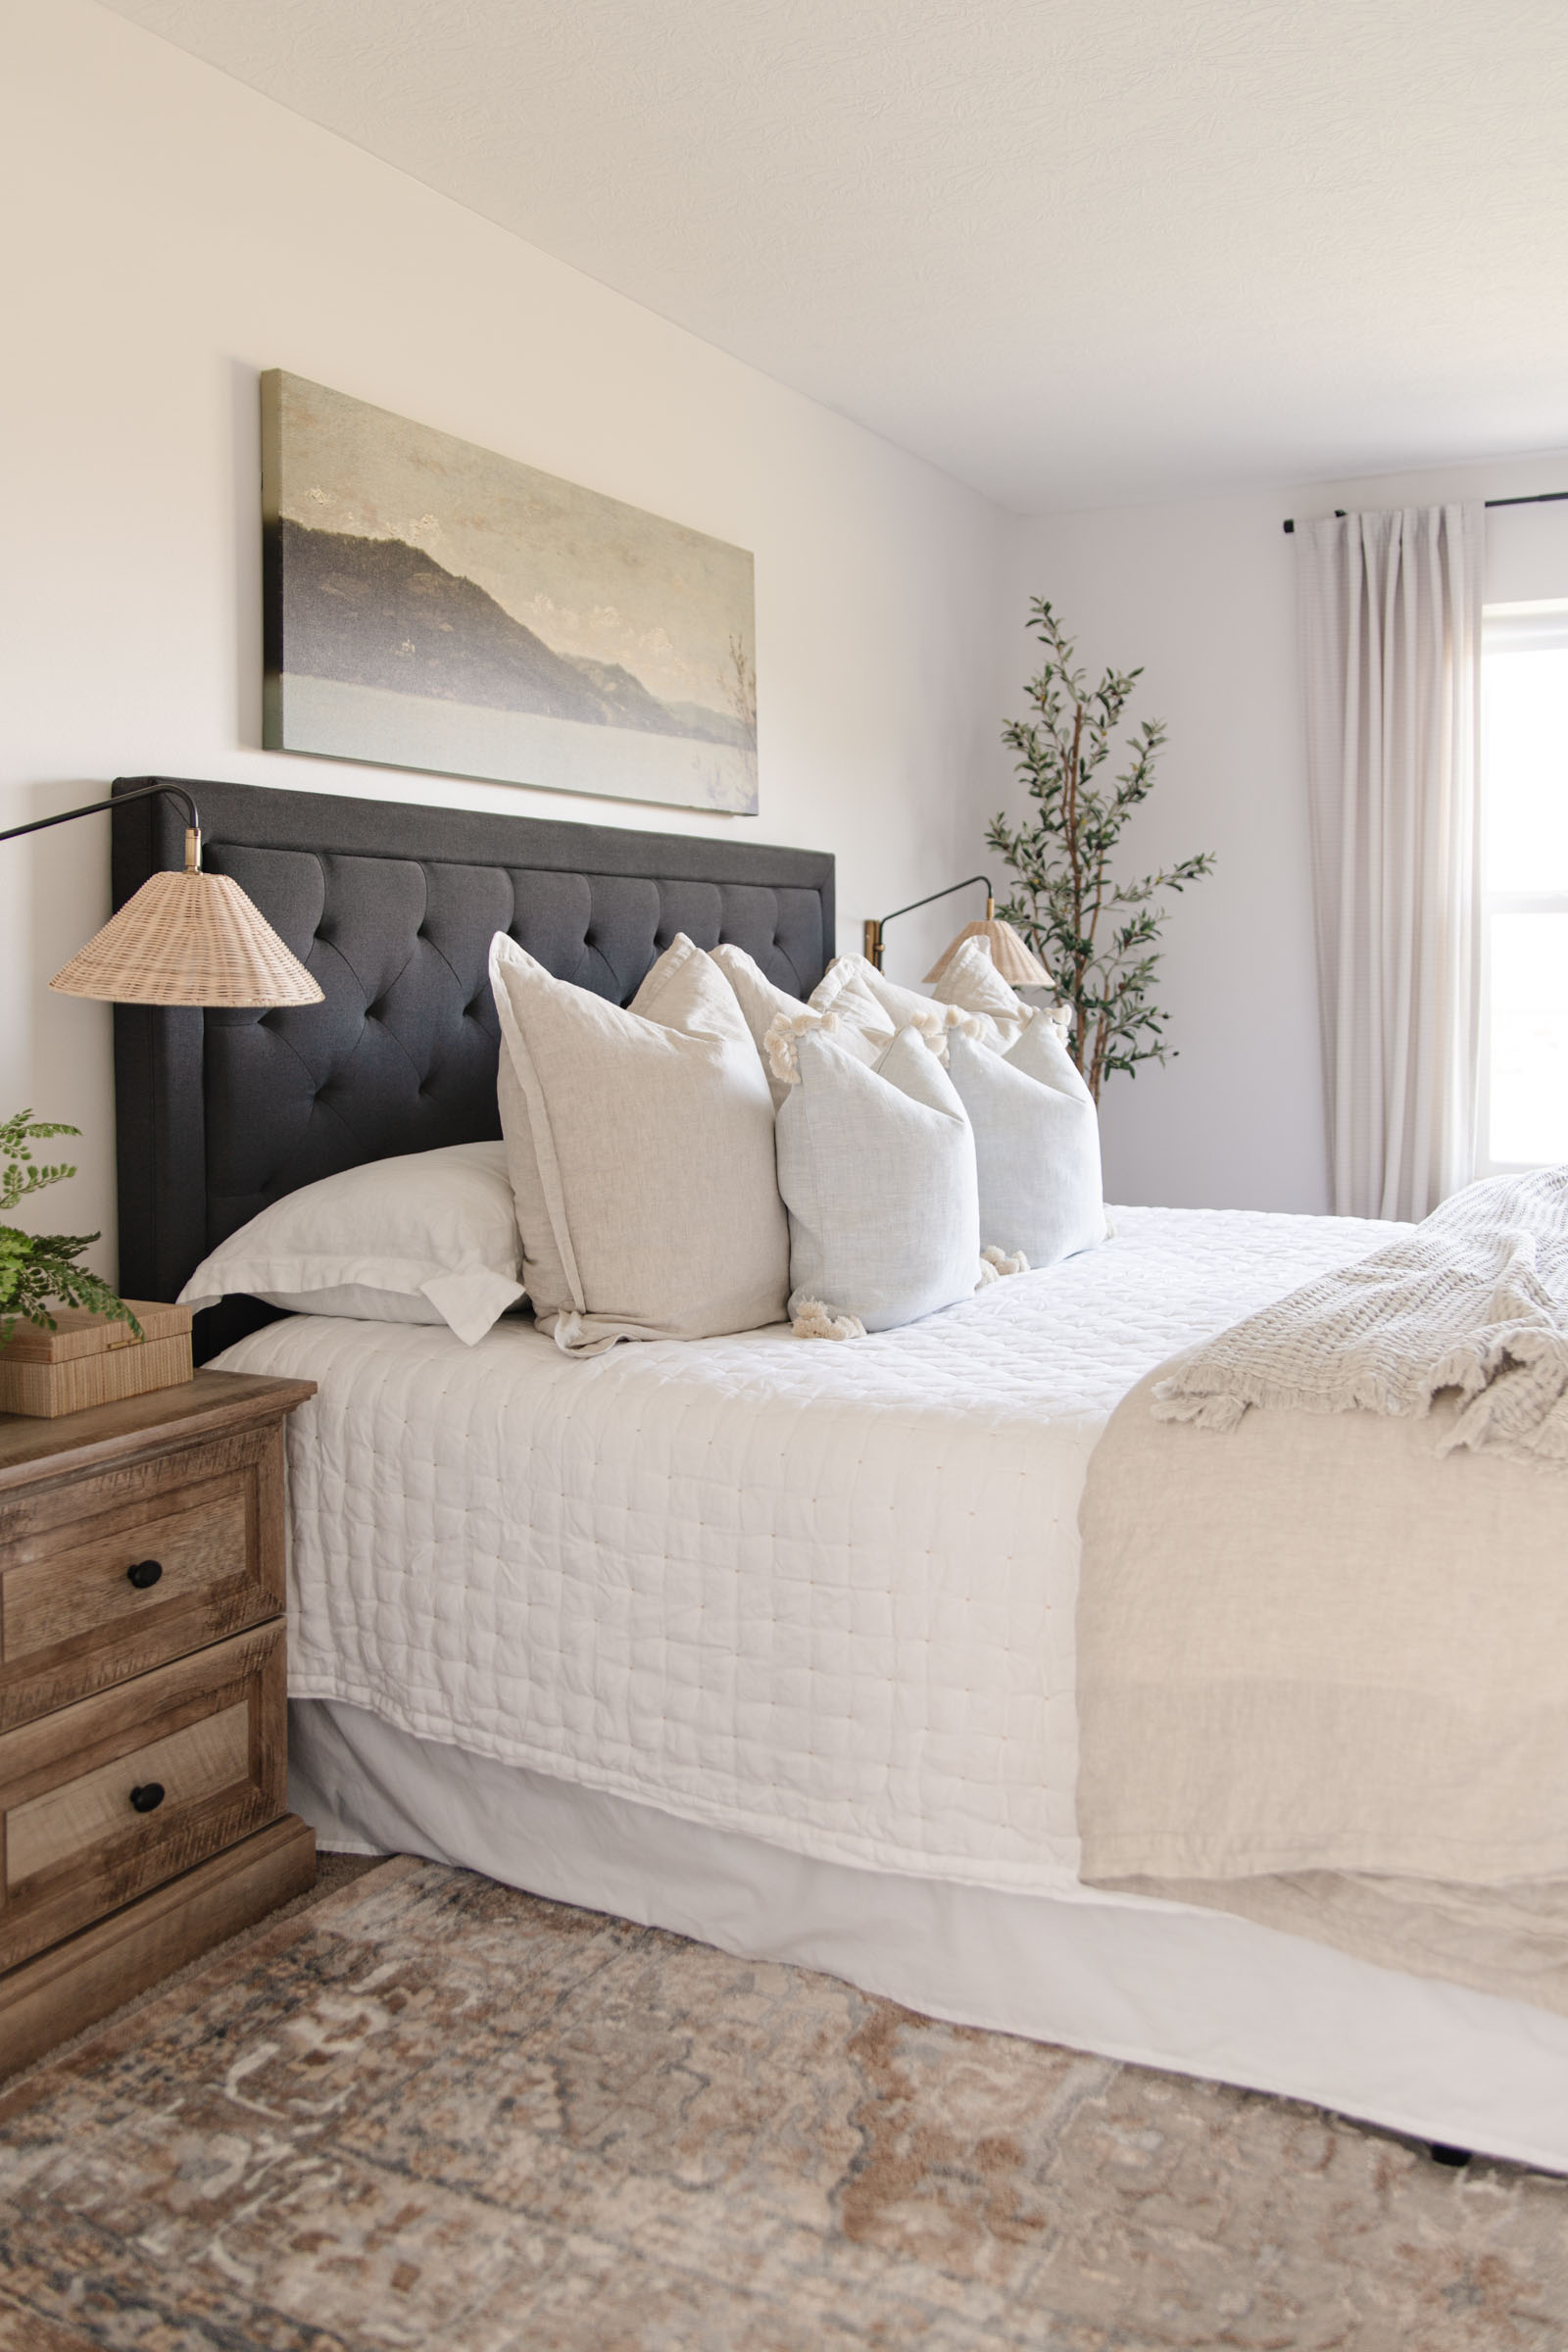 sutter linen quilt, Serena and lily bedding, beige ivied medallion rug, charcoal upholstered headboard, neutral bedroom